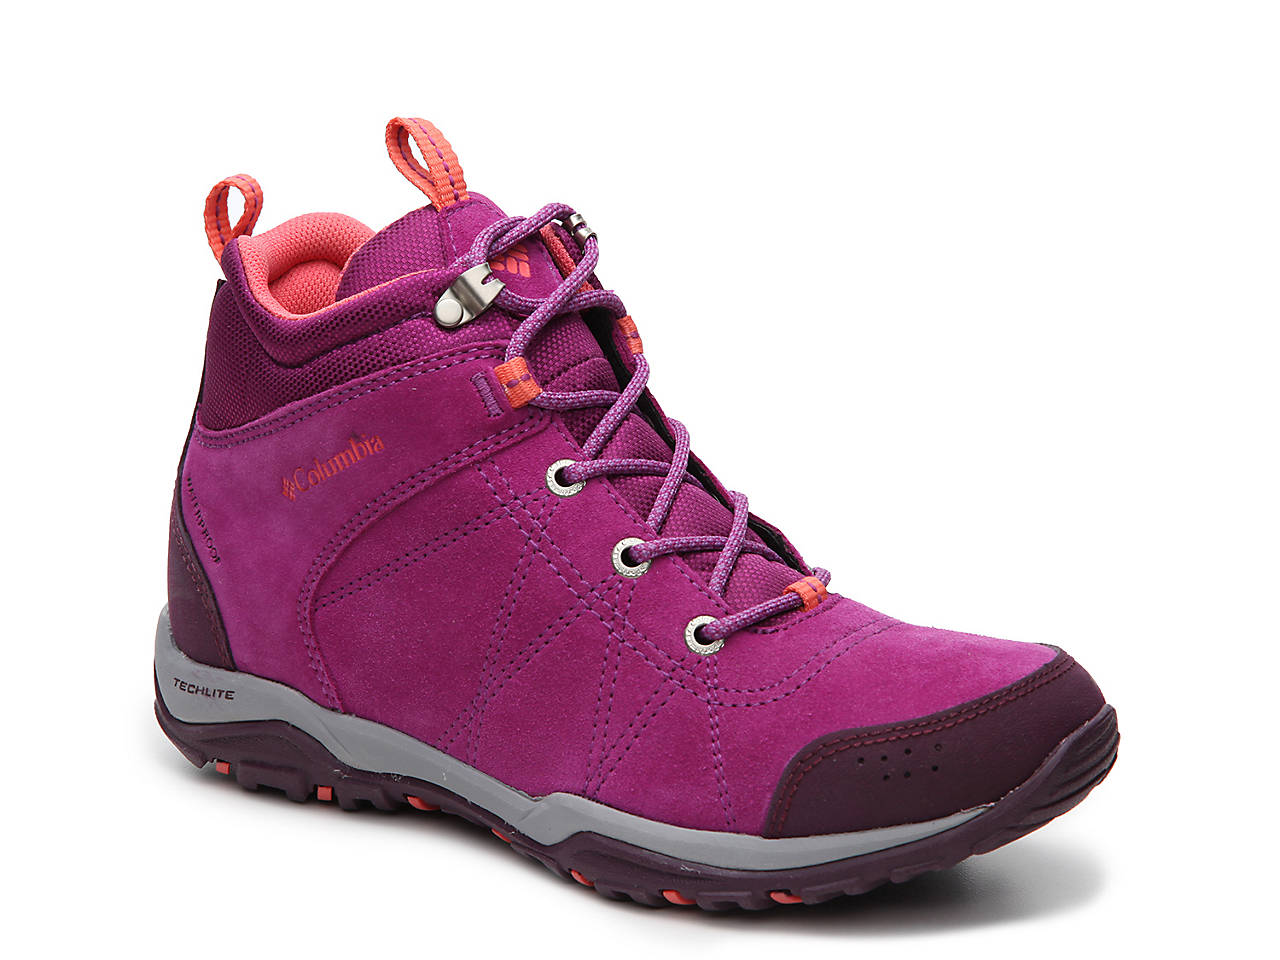 Columbia Fire Venture Women's ... Shoes sale find great big discount discount choice store for sale buy cheap best uQrx5cC